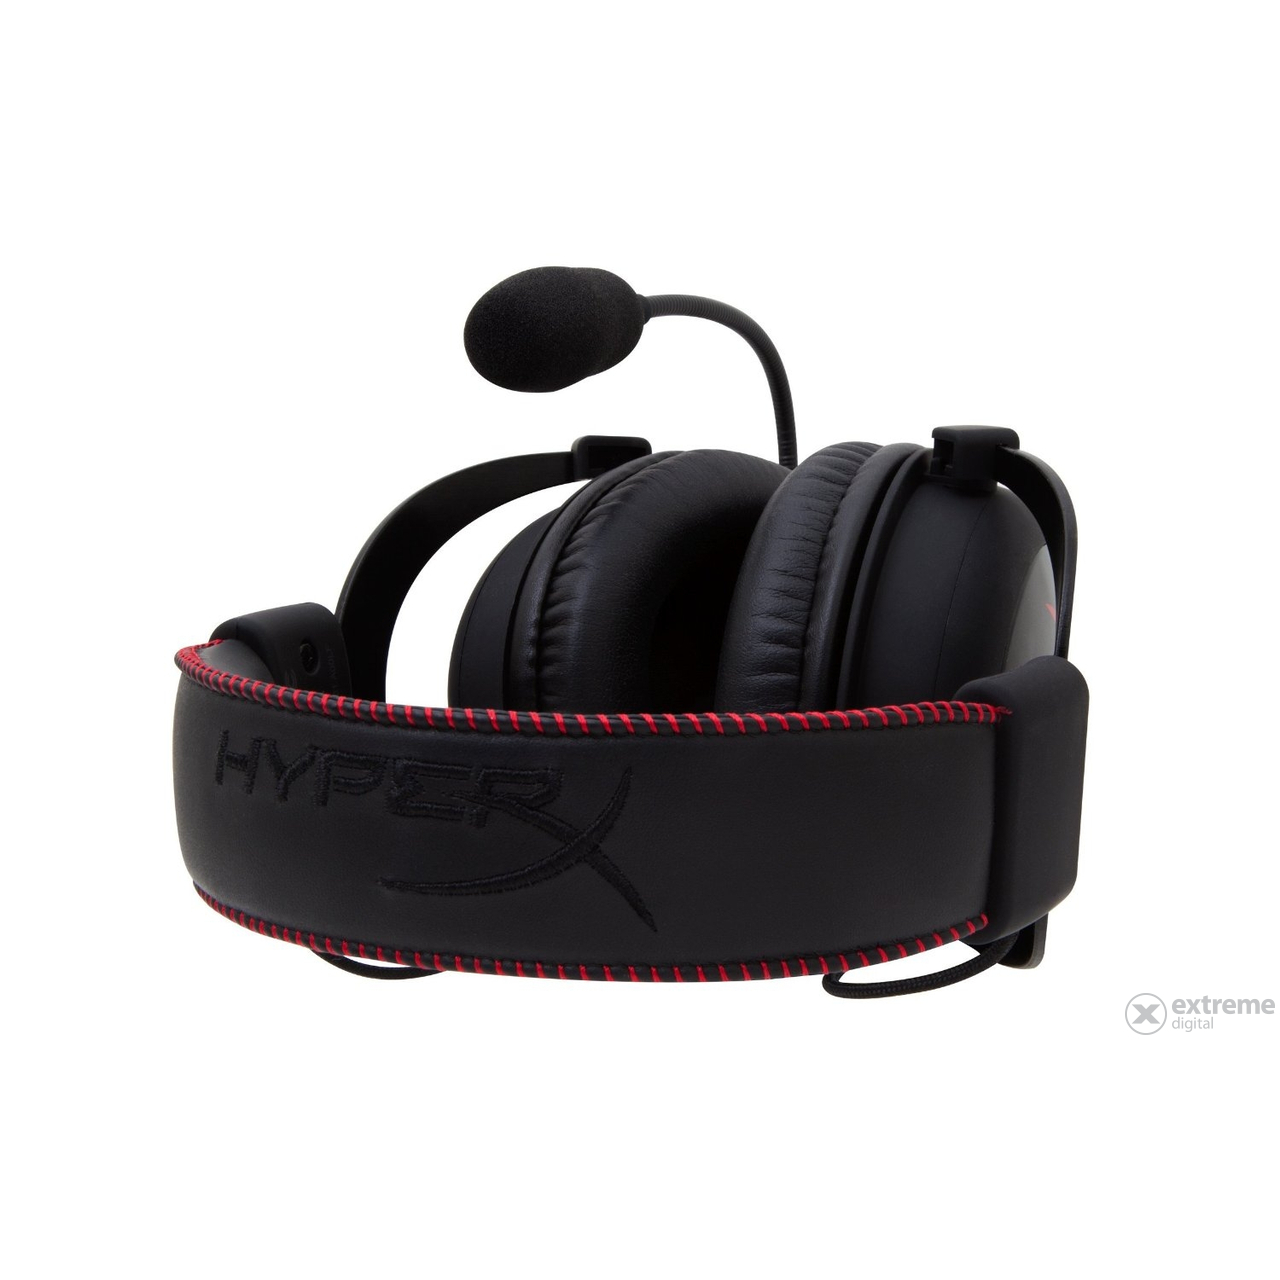 kingston-hyperx-cloud-gamer-headset-fekete-khx-h3cl-wr_01dc233f.jpg